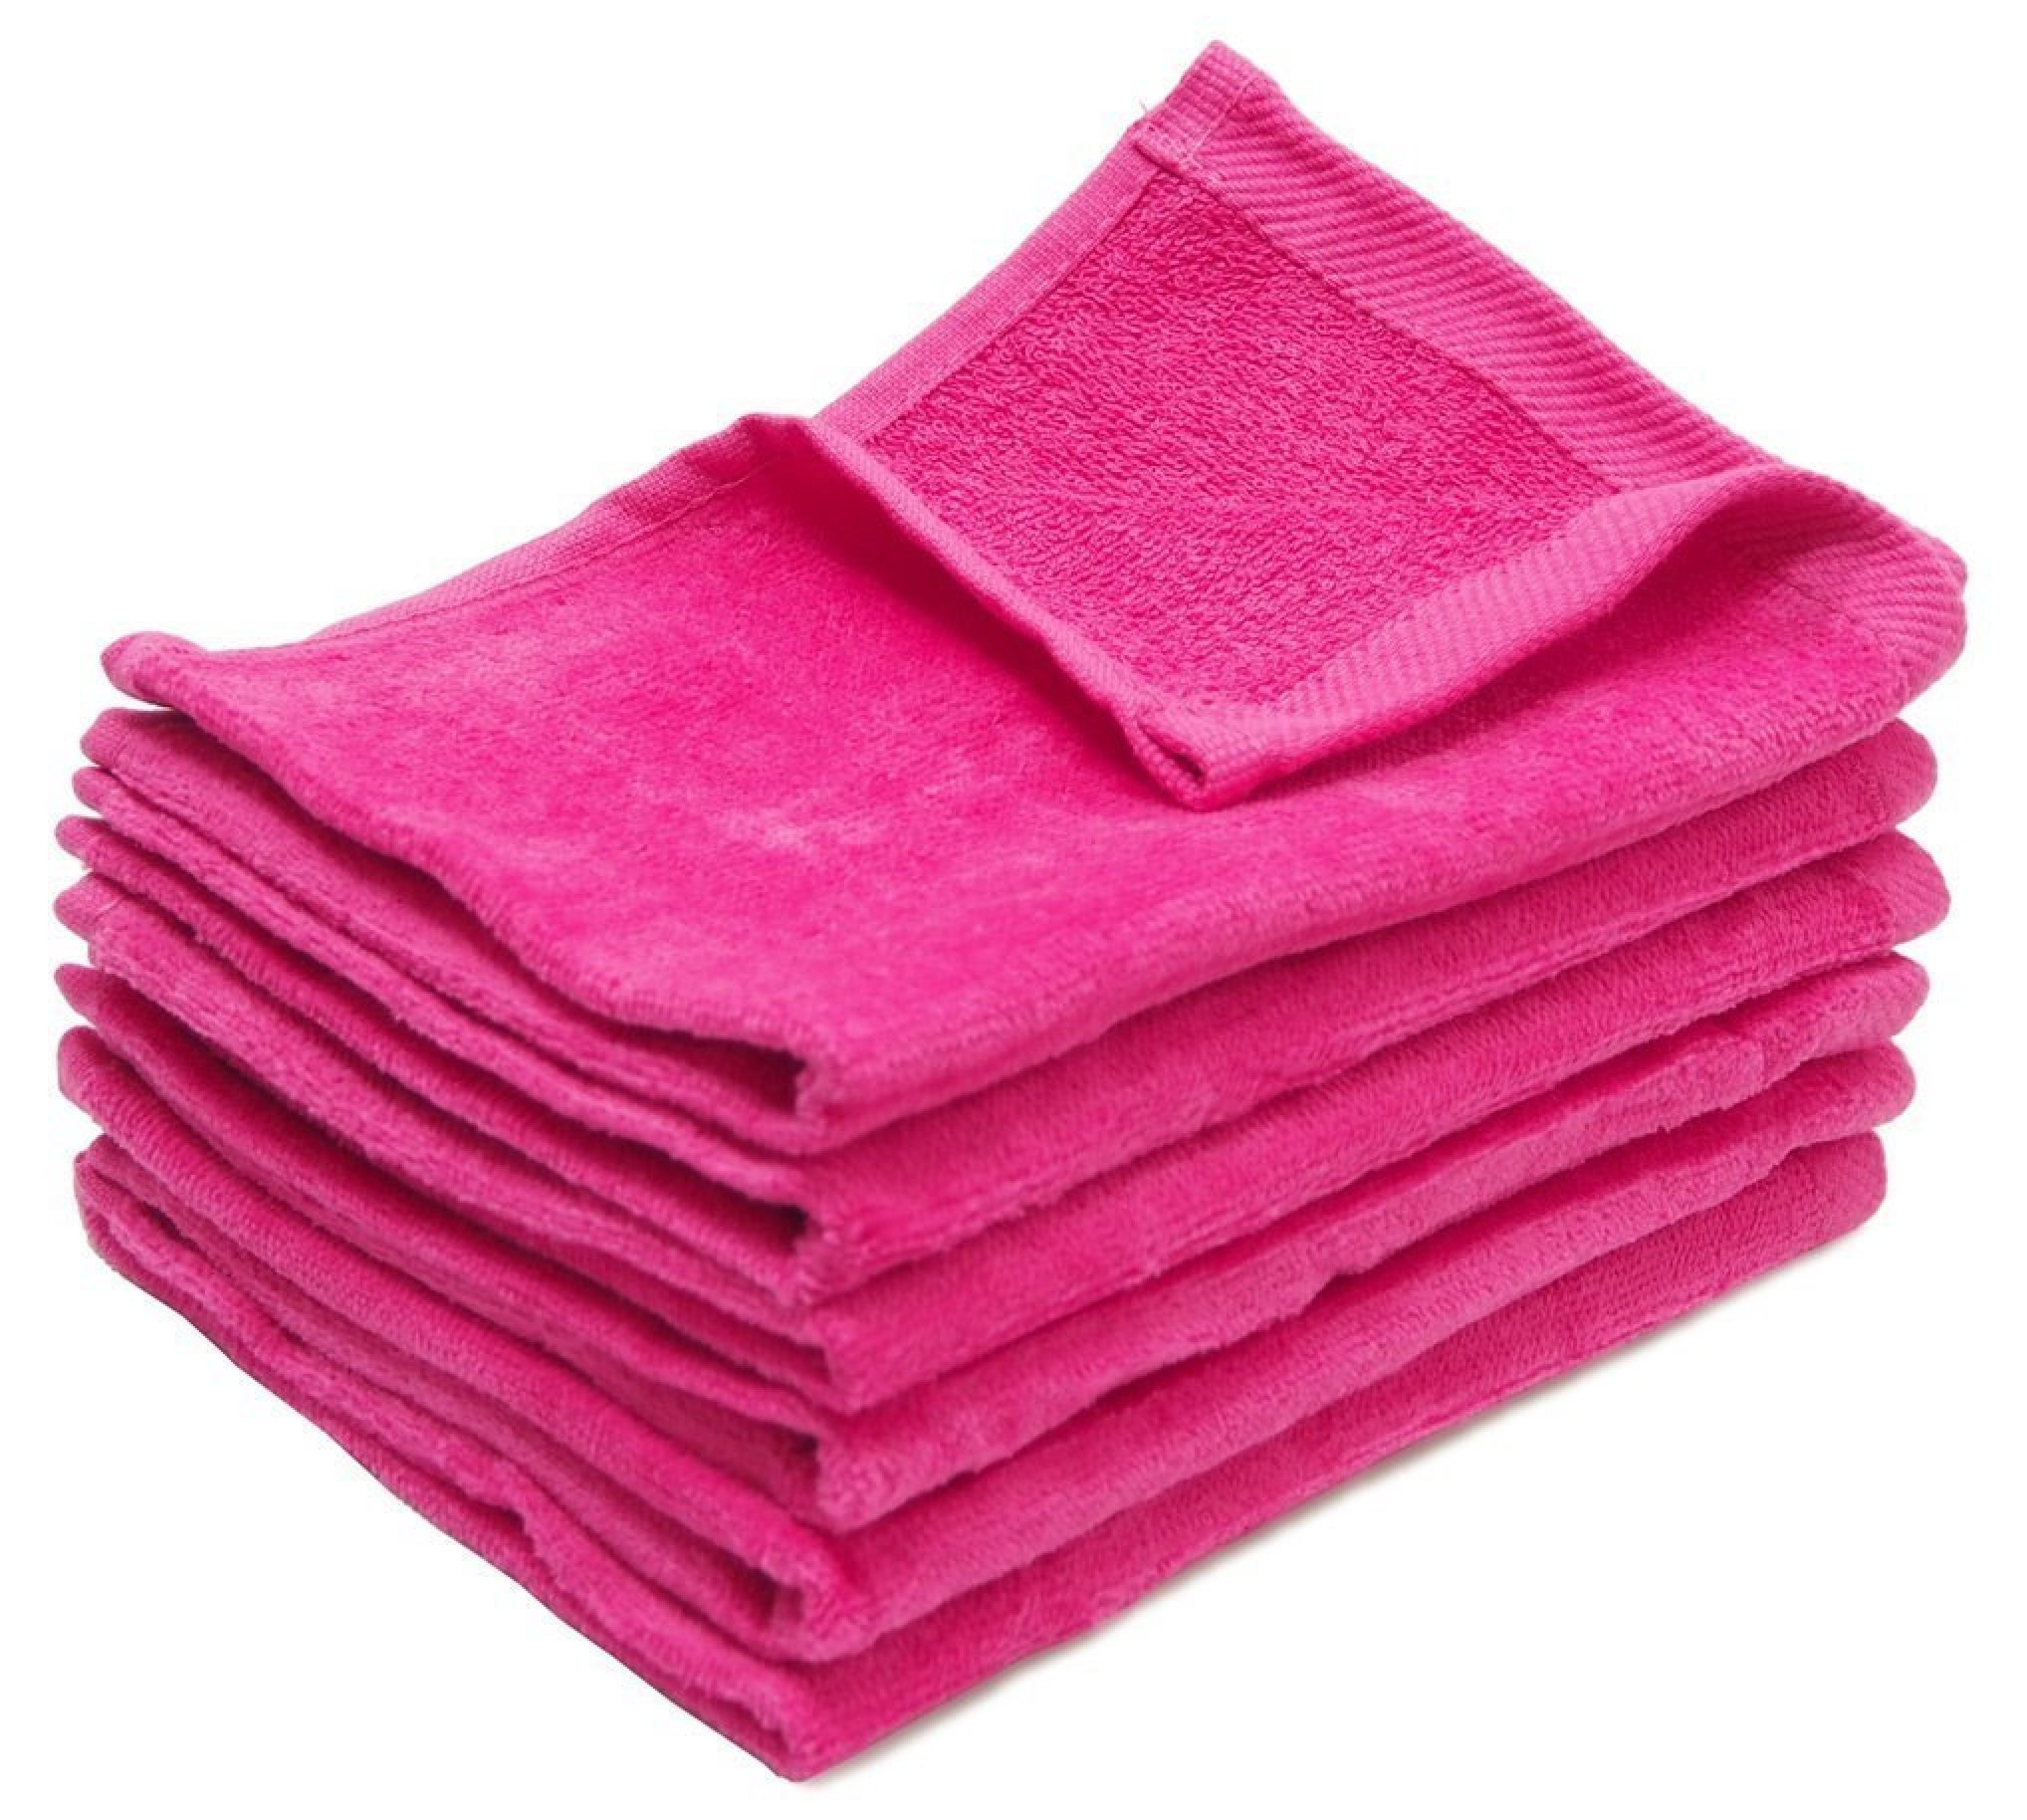 100 Piece- Hand Towels, 100% Cotton, Multipurpose Use for Hand, Face, Golf, Ideal for everyday use - Easy care machine wash (100, Hot Pink) by Eco Online Market